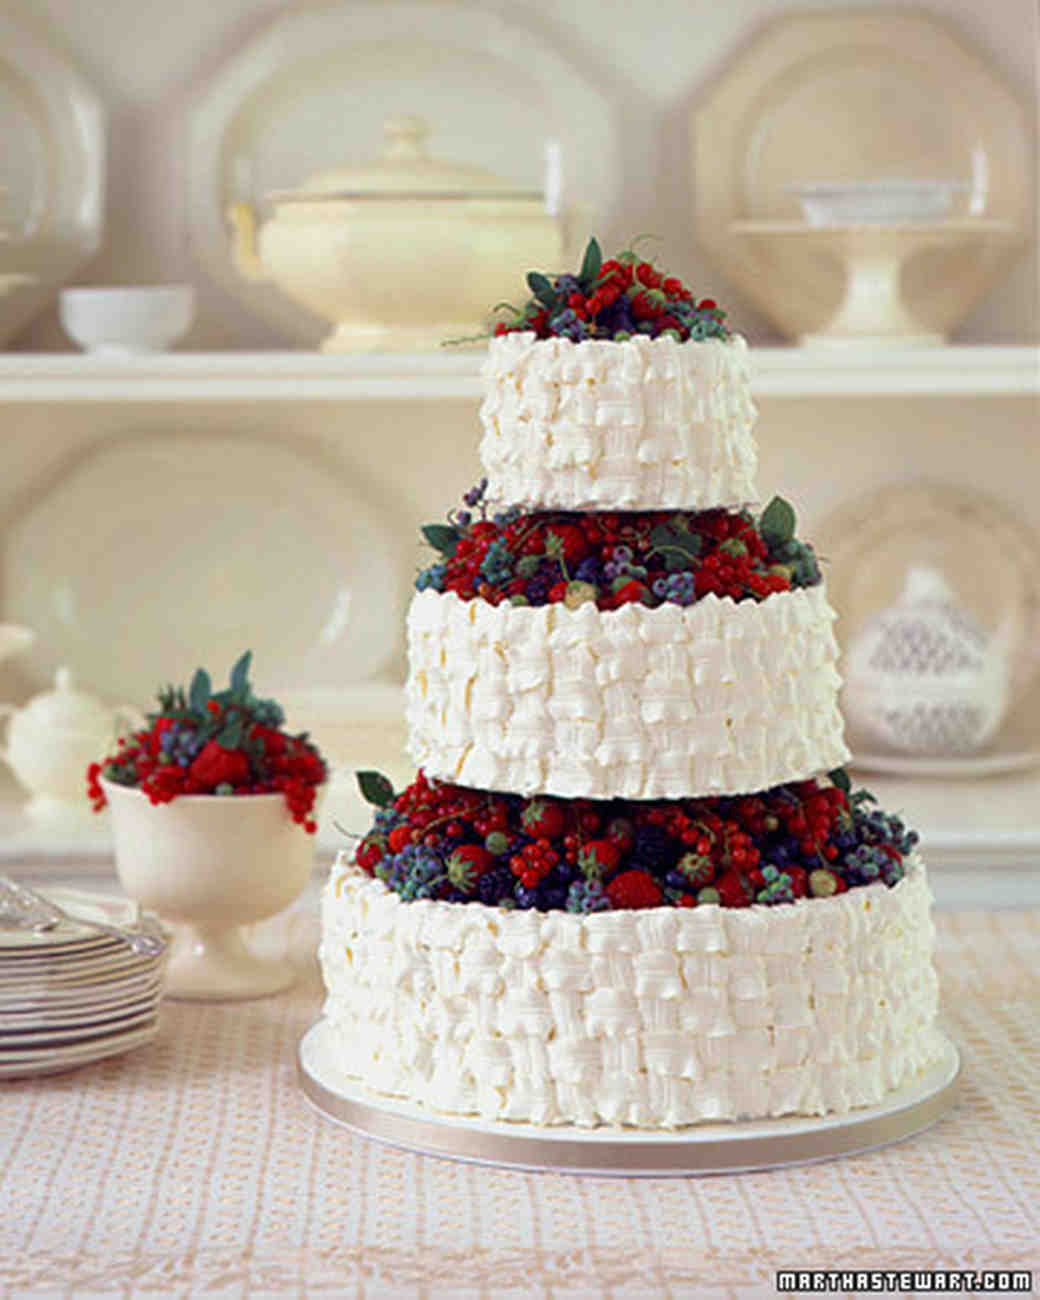 42 Fruit Wedding Cakes That Are Full of Color  and Flavor     Martha     42 Fruit Wedding Cakes That Are Full of Color  and Flavor     Martha  Stewart Weddings